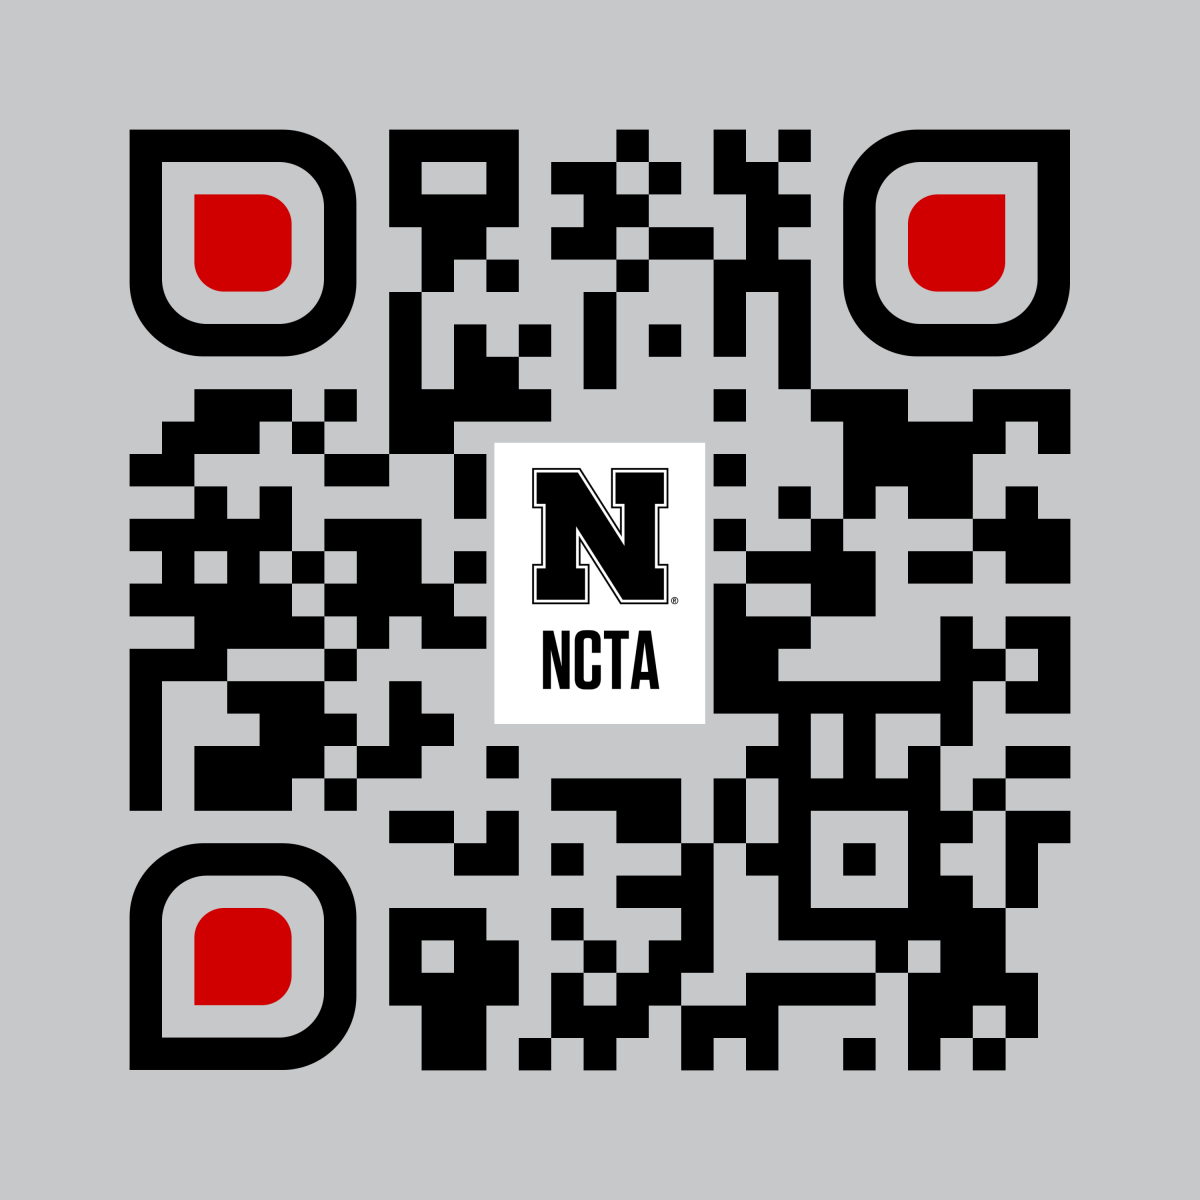 Interest Form QR Code